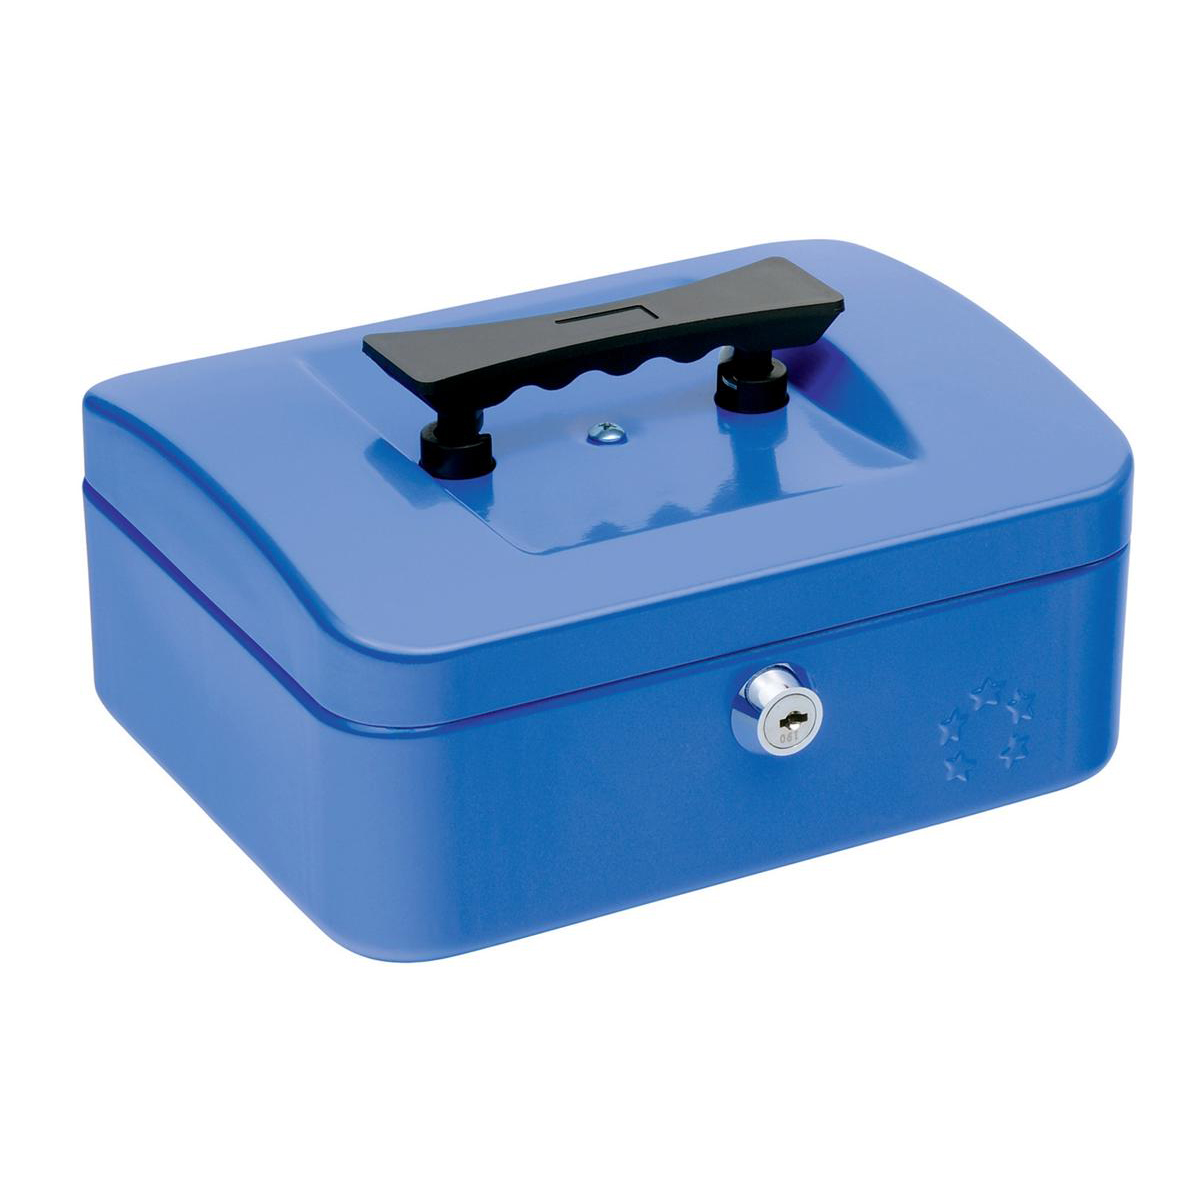 Cash 5 Star Facilities Cash Box with 5-compartment Tray Steel Spring Lock 8 Inch W200xD160xH70mm Blue